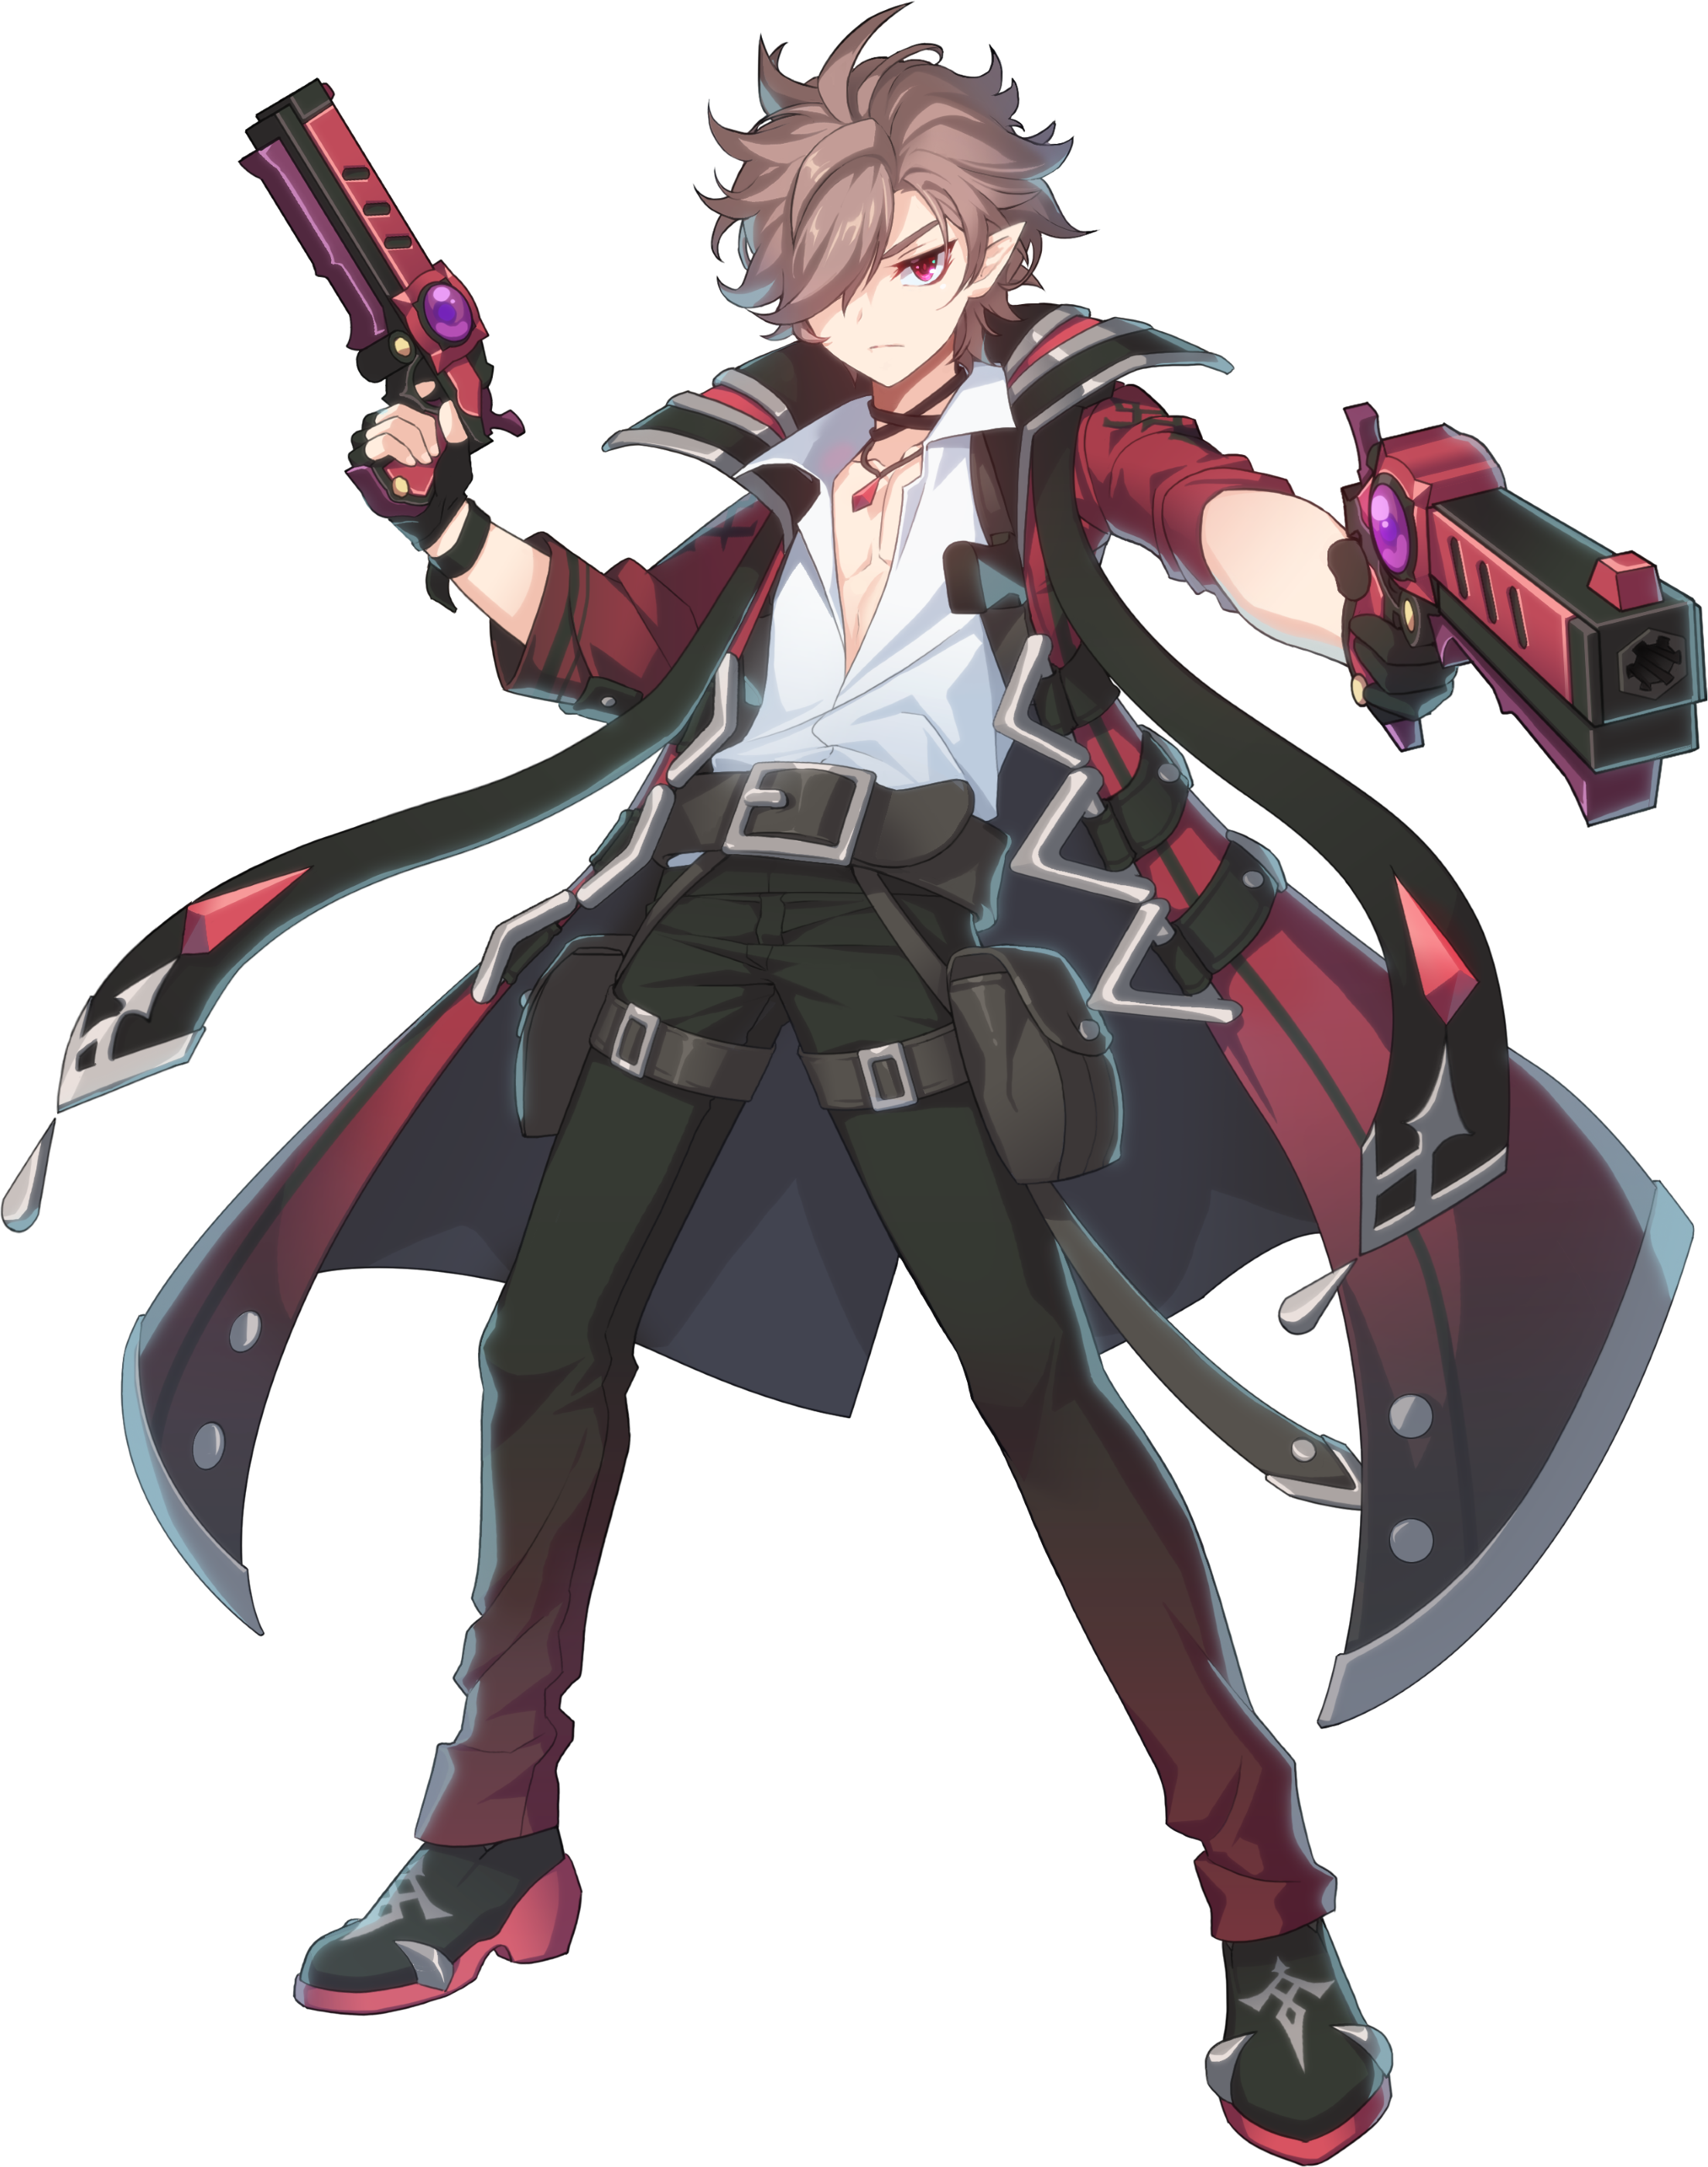 Grand Chase Dimensional Chaser Gallery Grand Chase Wiki Fandom Powered By Wikia Anime Character Design Anime Warrior Character Design